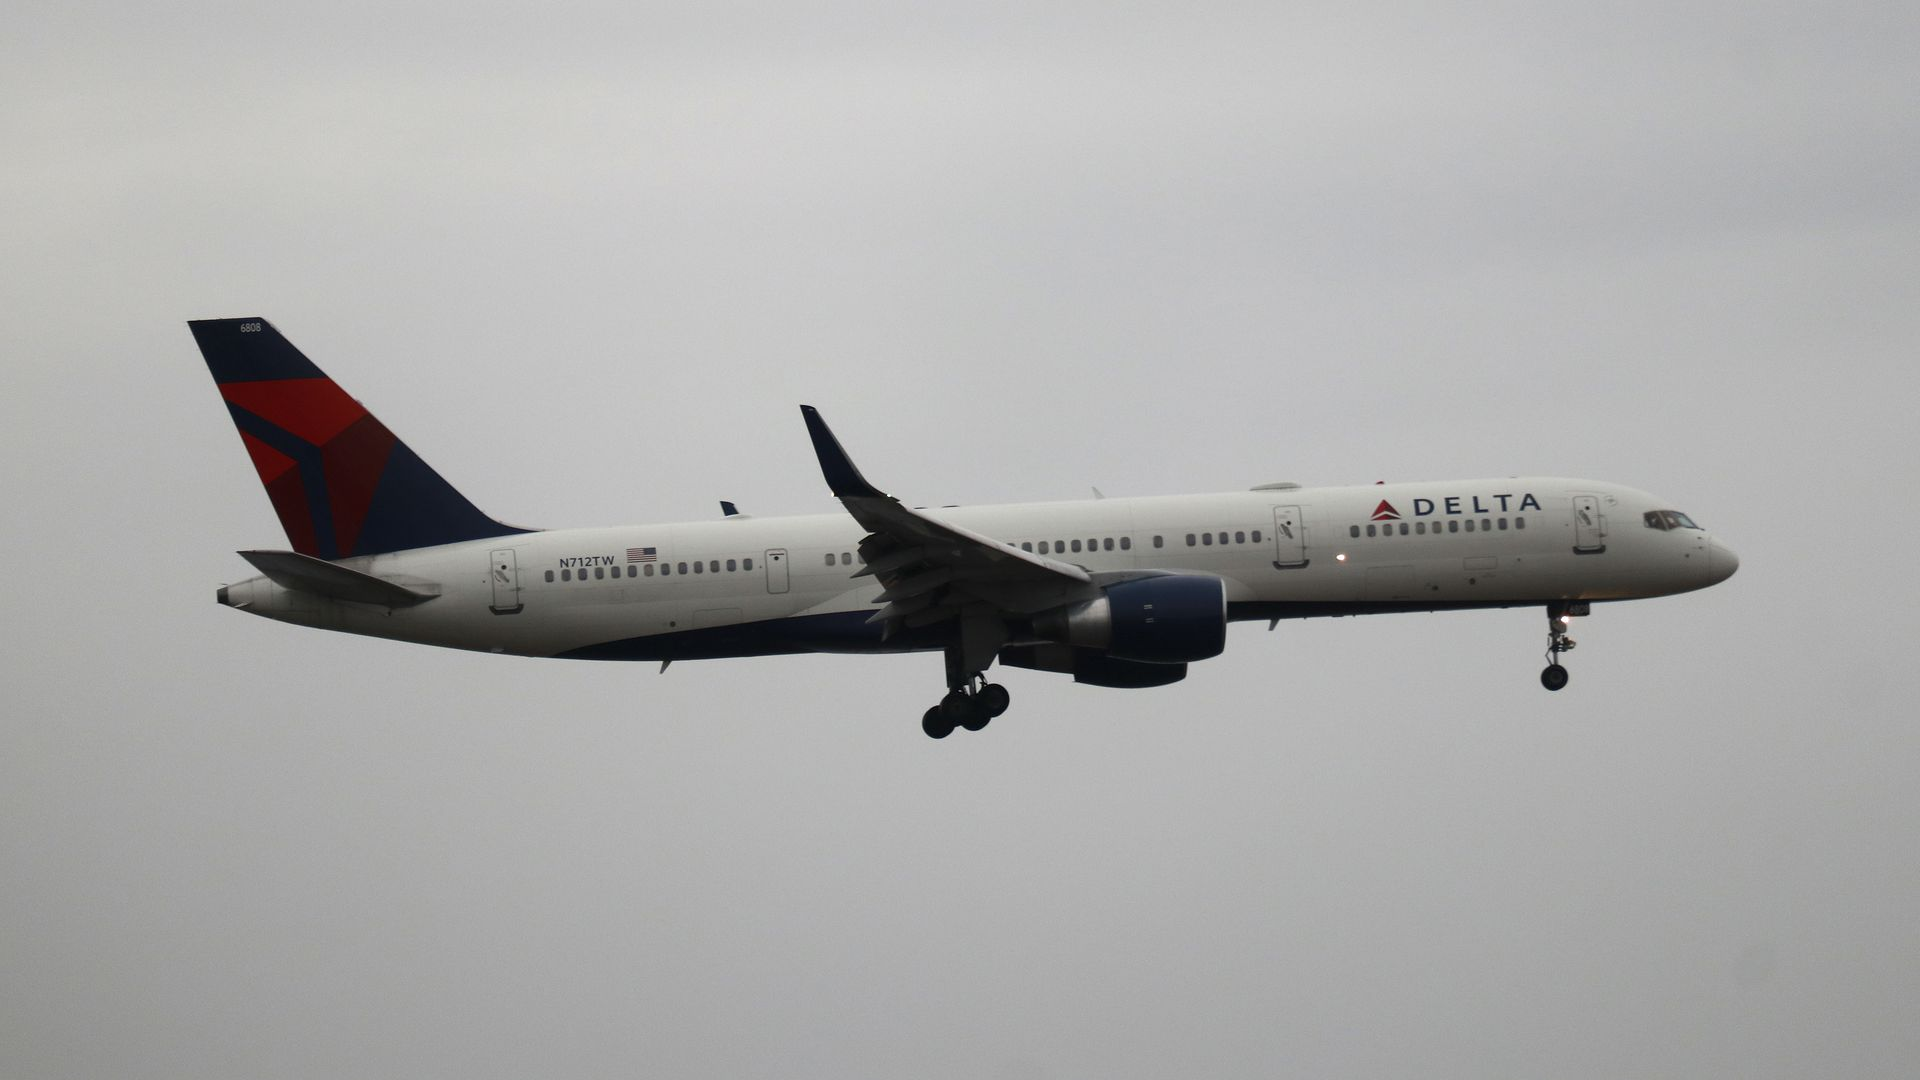 A Delta airplane midflight